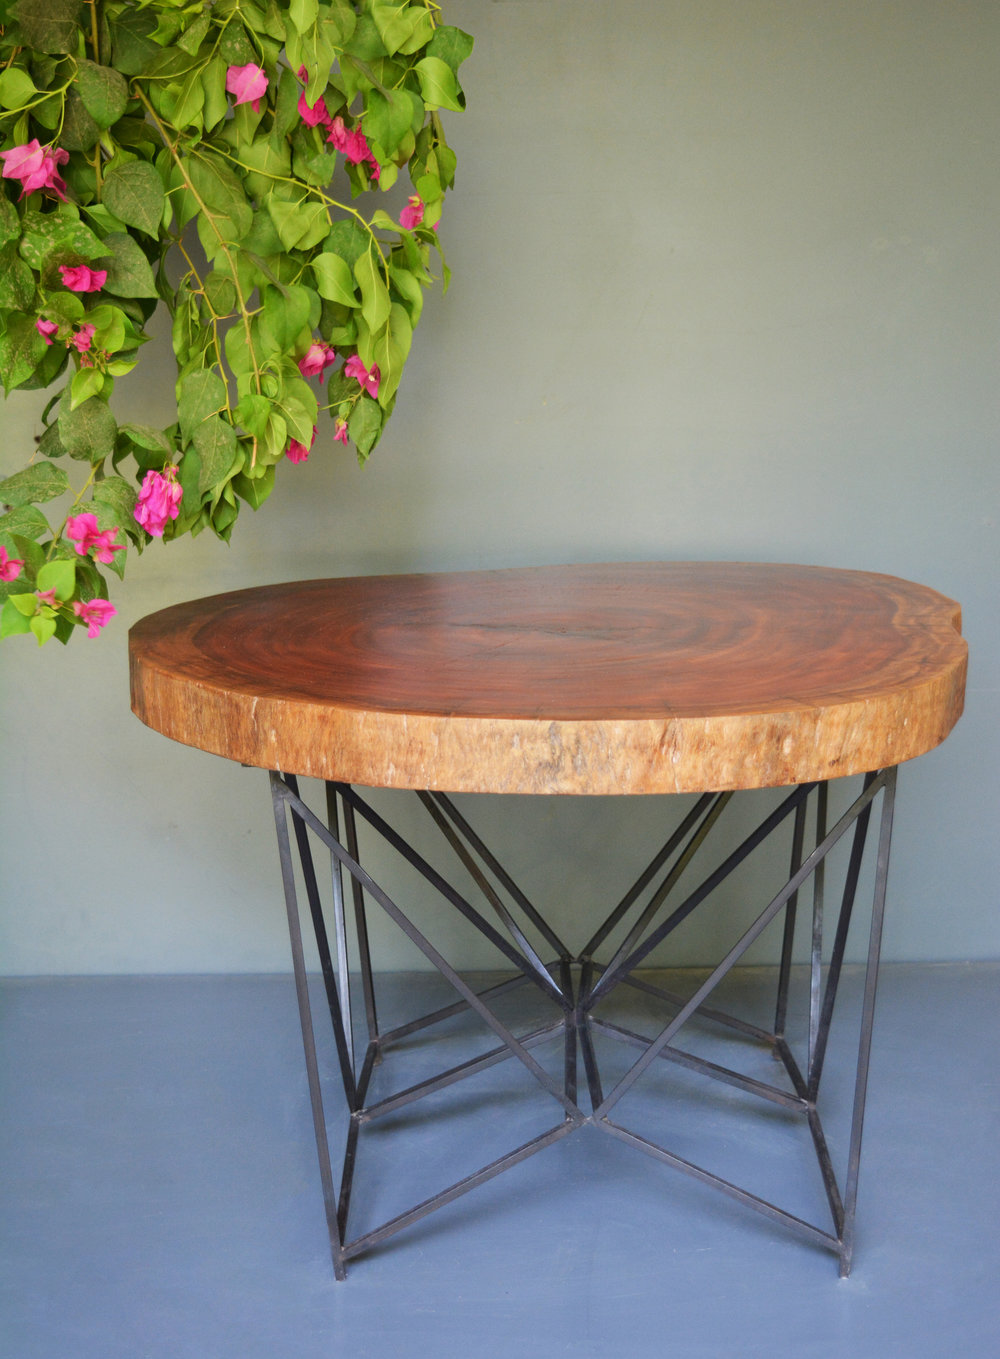 3 Live Edge Table with Space Frame.jpg